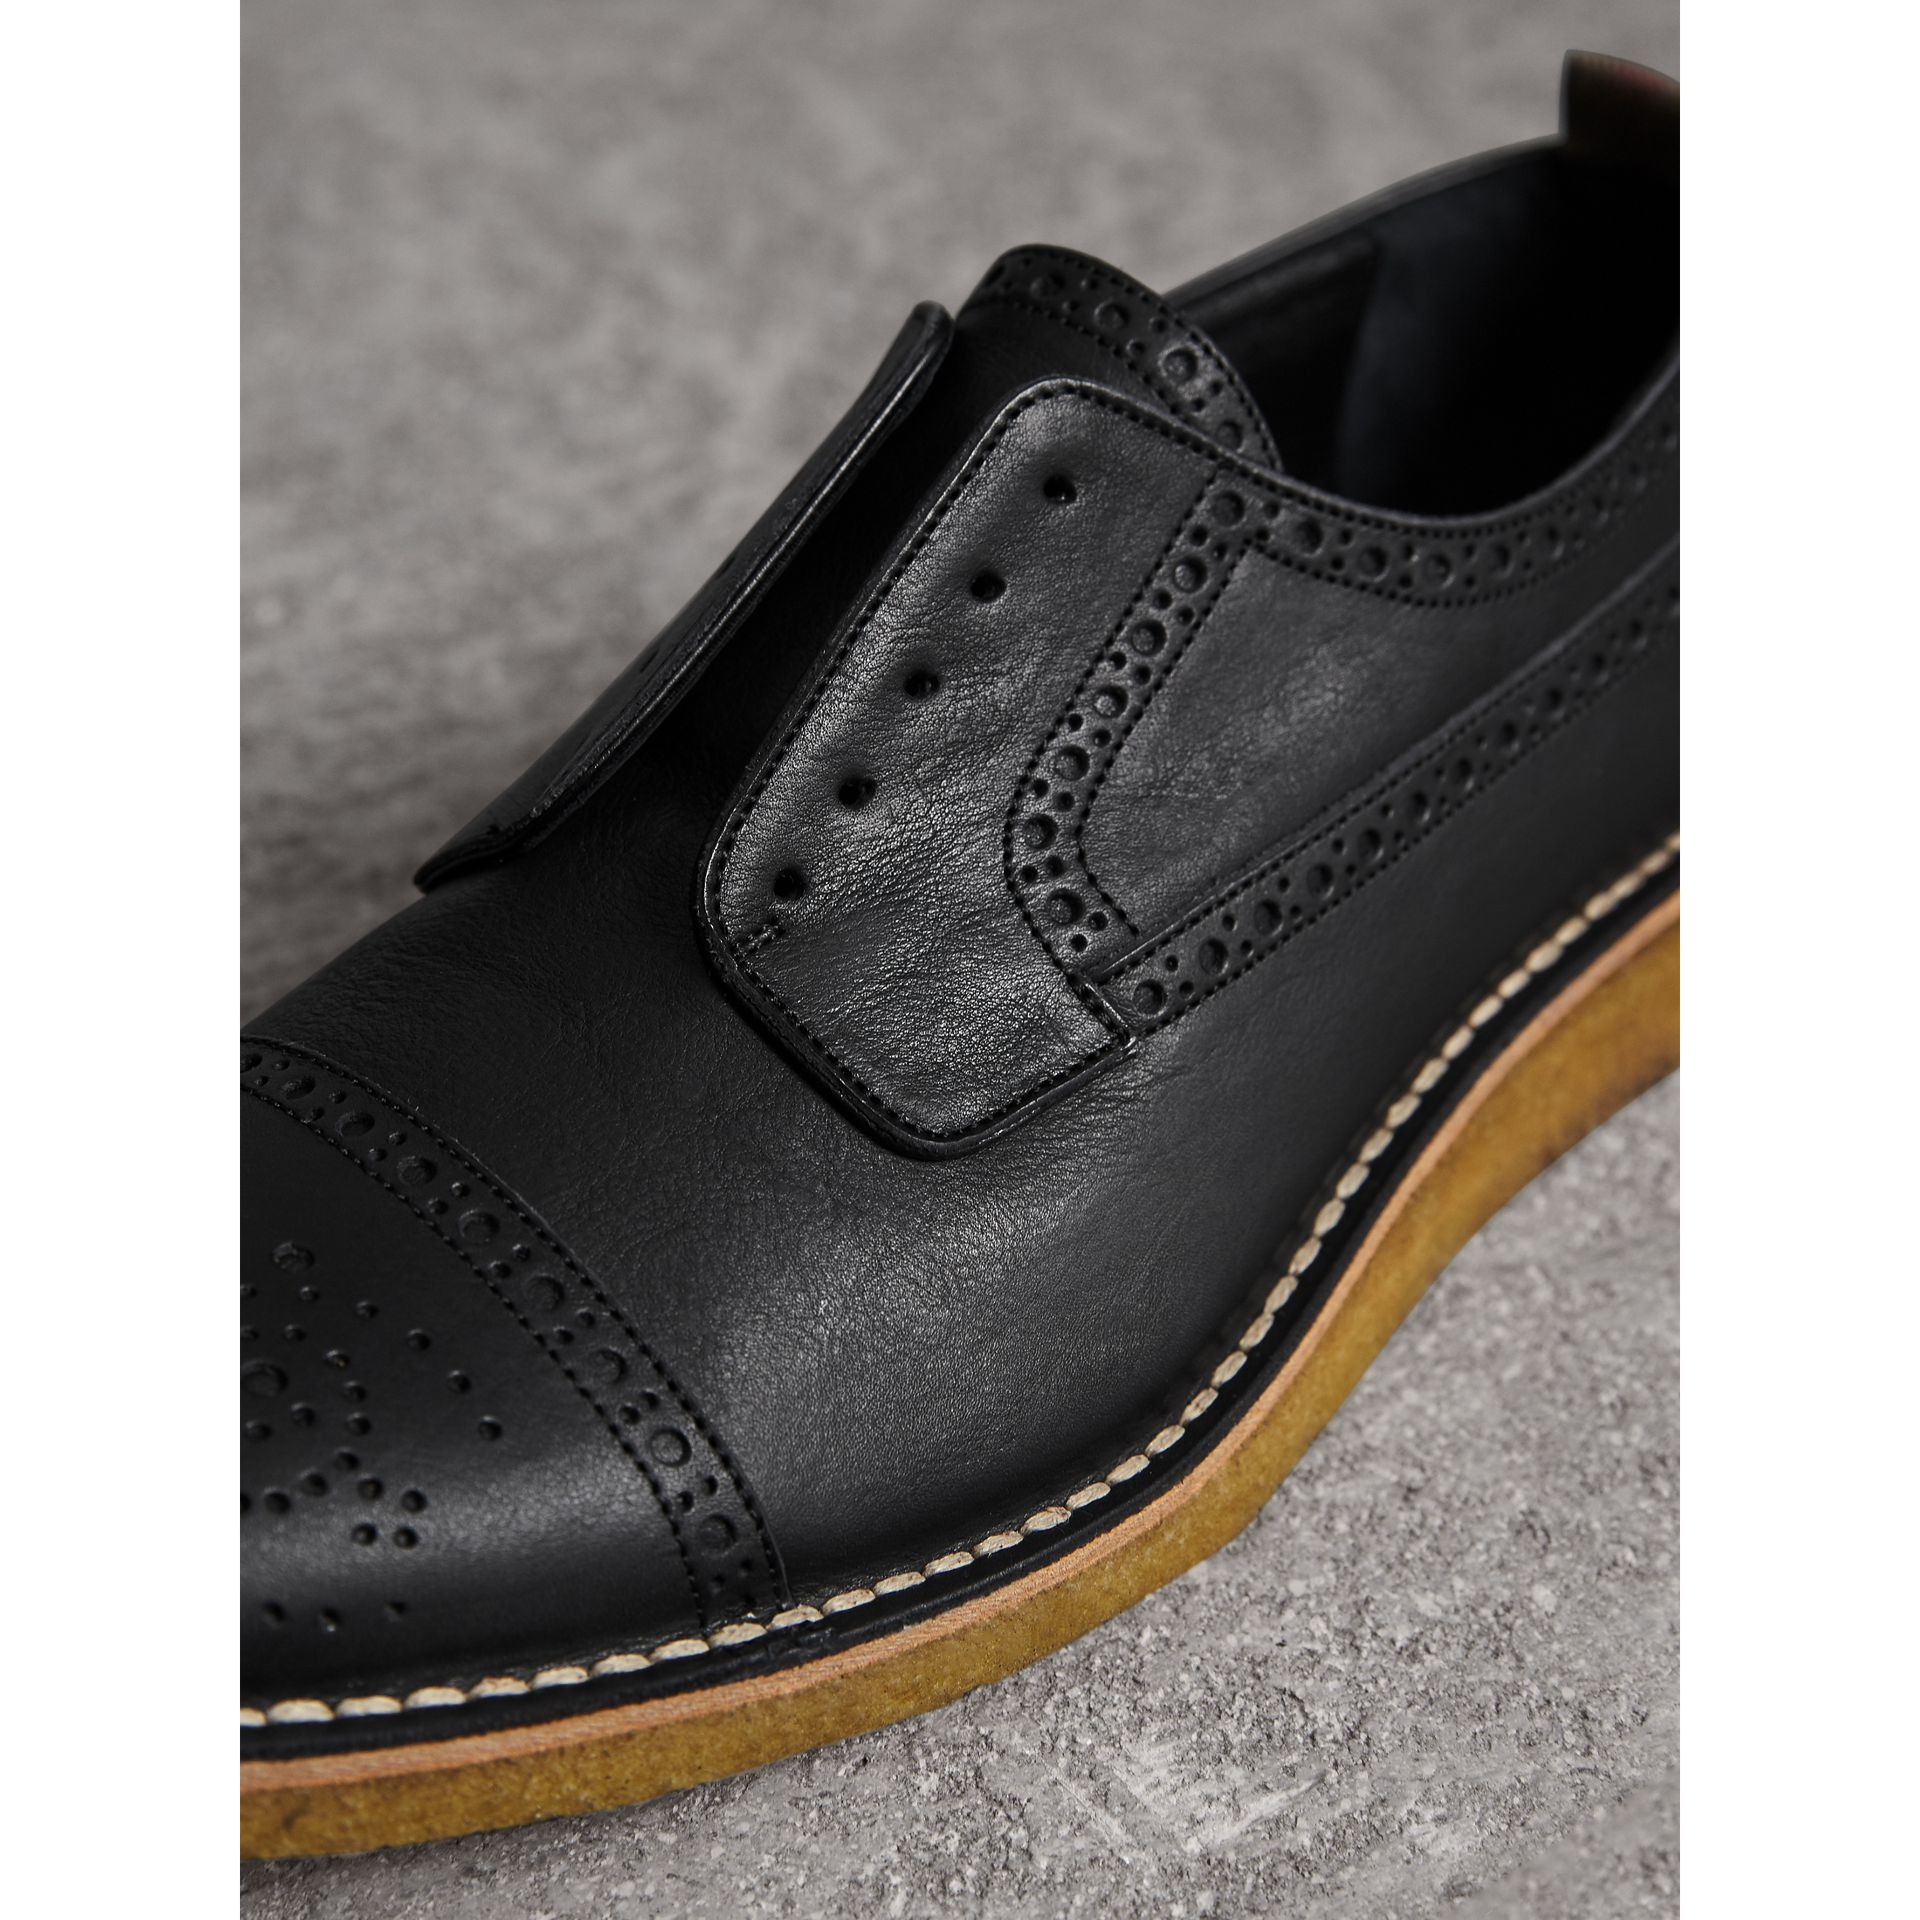 Raised Toe-cap Leather Brogues in Black - Men | Burberry - gallery image 2